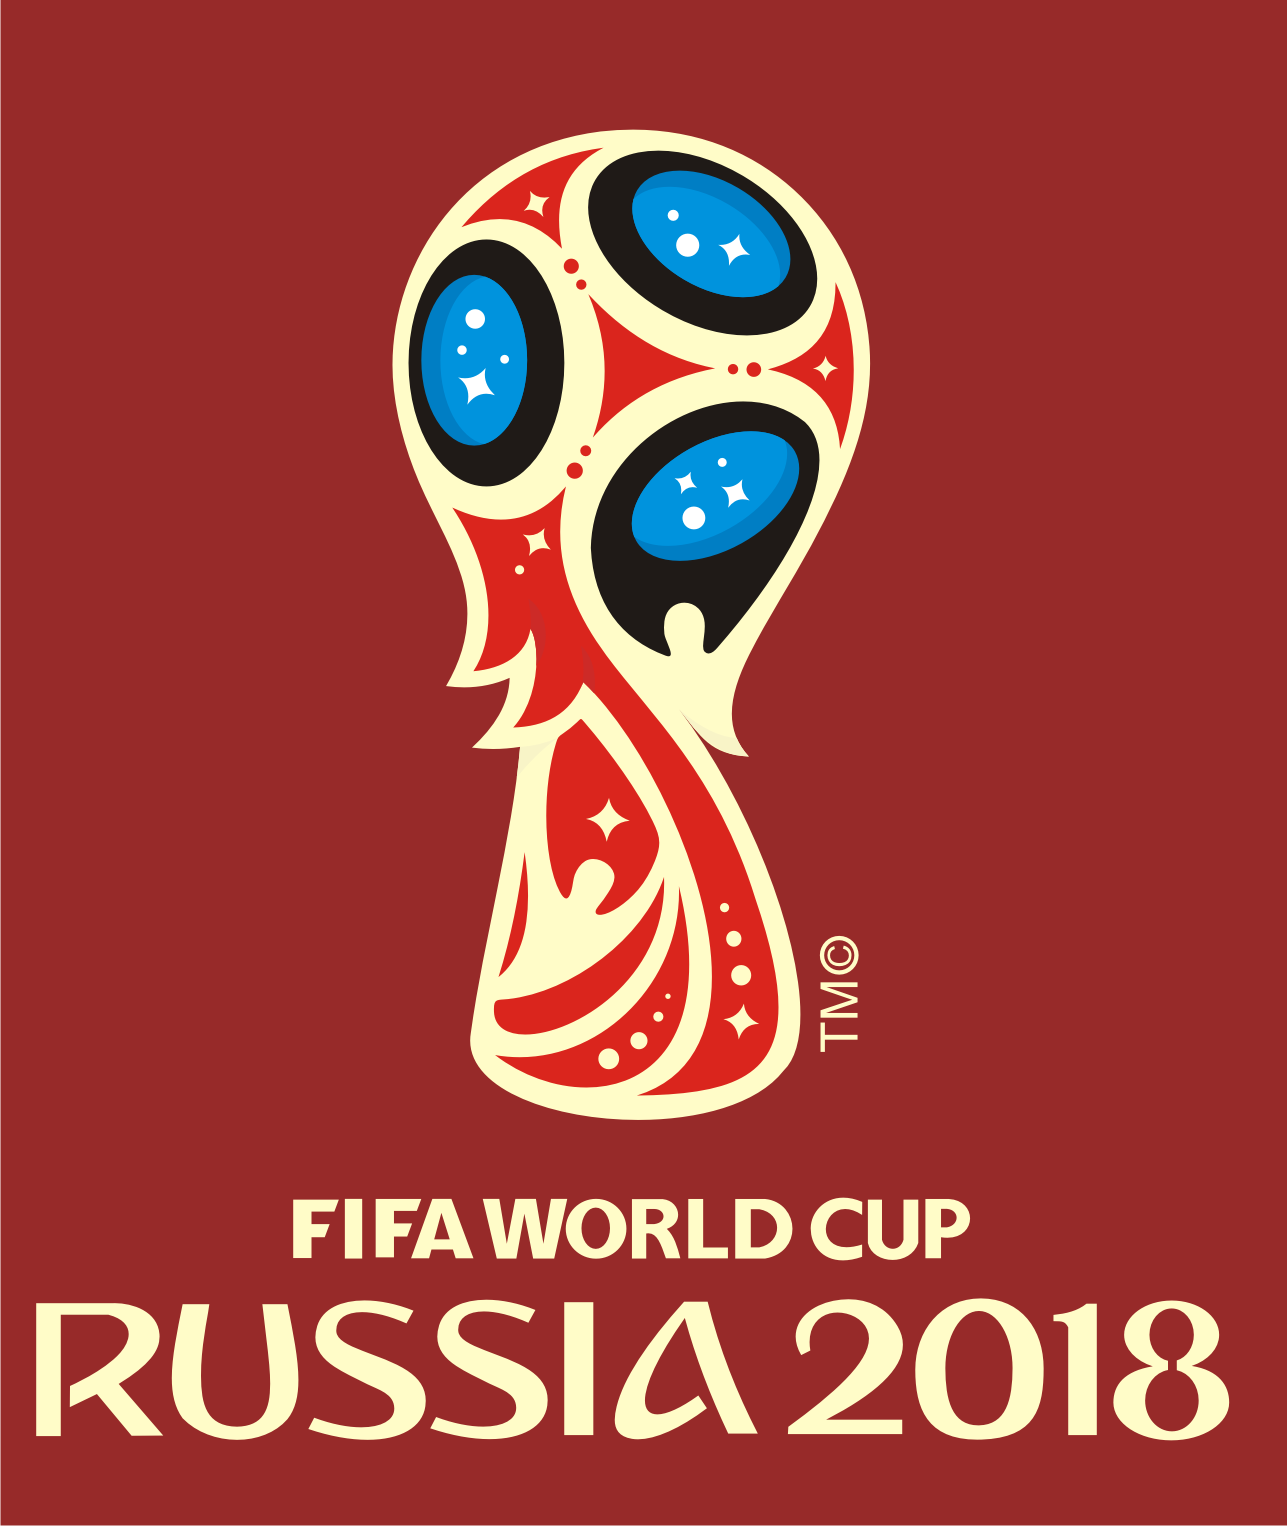 Simple Fifa World Cup 2018 - Fifa%2BWorld%2BCup%2B2018%2BLogo  Photograph_19121 .png